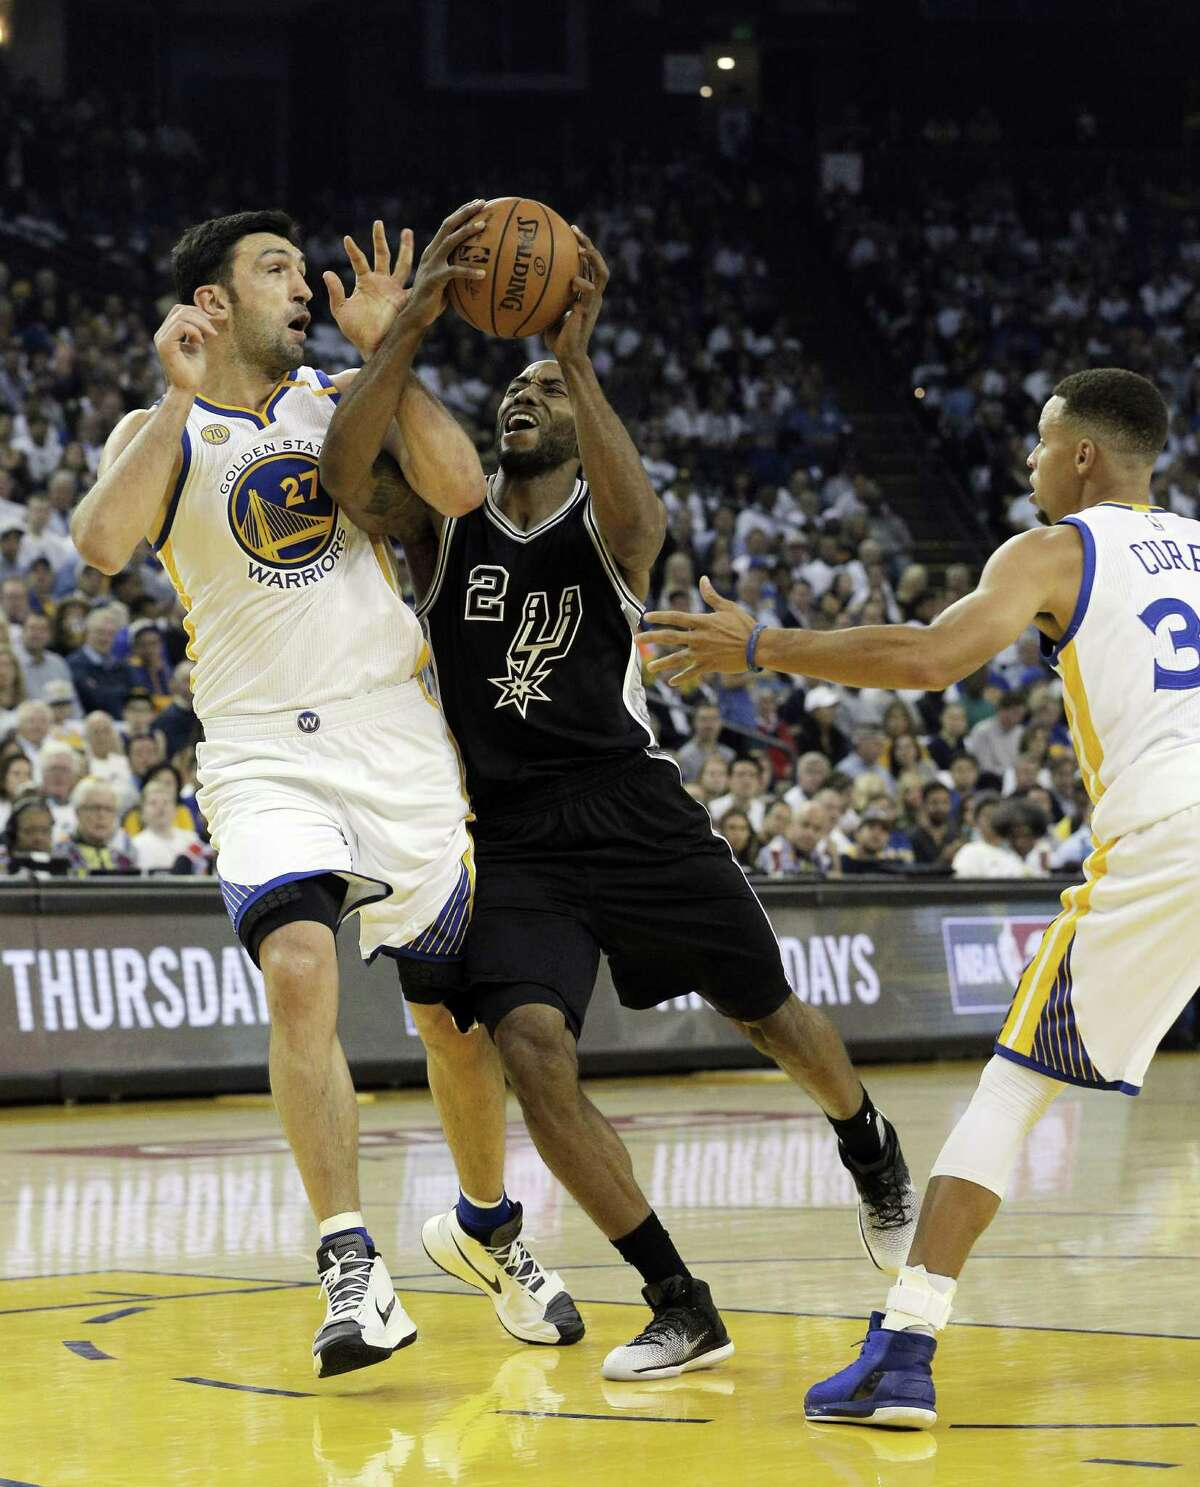 Kawhi Leonard (2) drives into ZaZa Pachulia (27) in the first half as the Golden State Warriors played the San Antonio Spurs in their season opener at Oracle Arena in Oakland, Calif., on Tuesday, October 25, 2016.